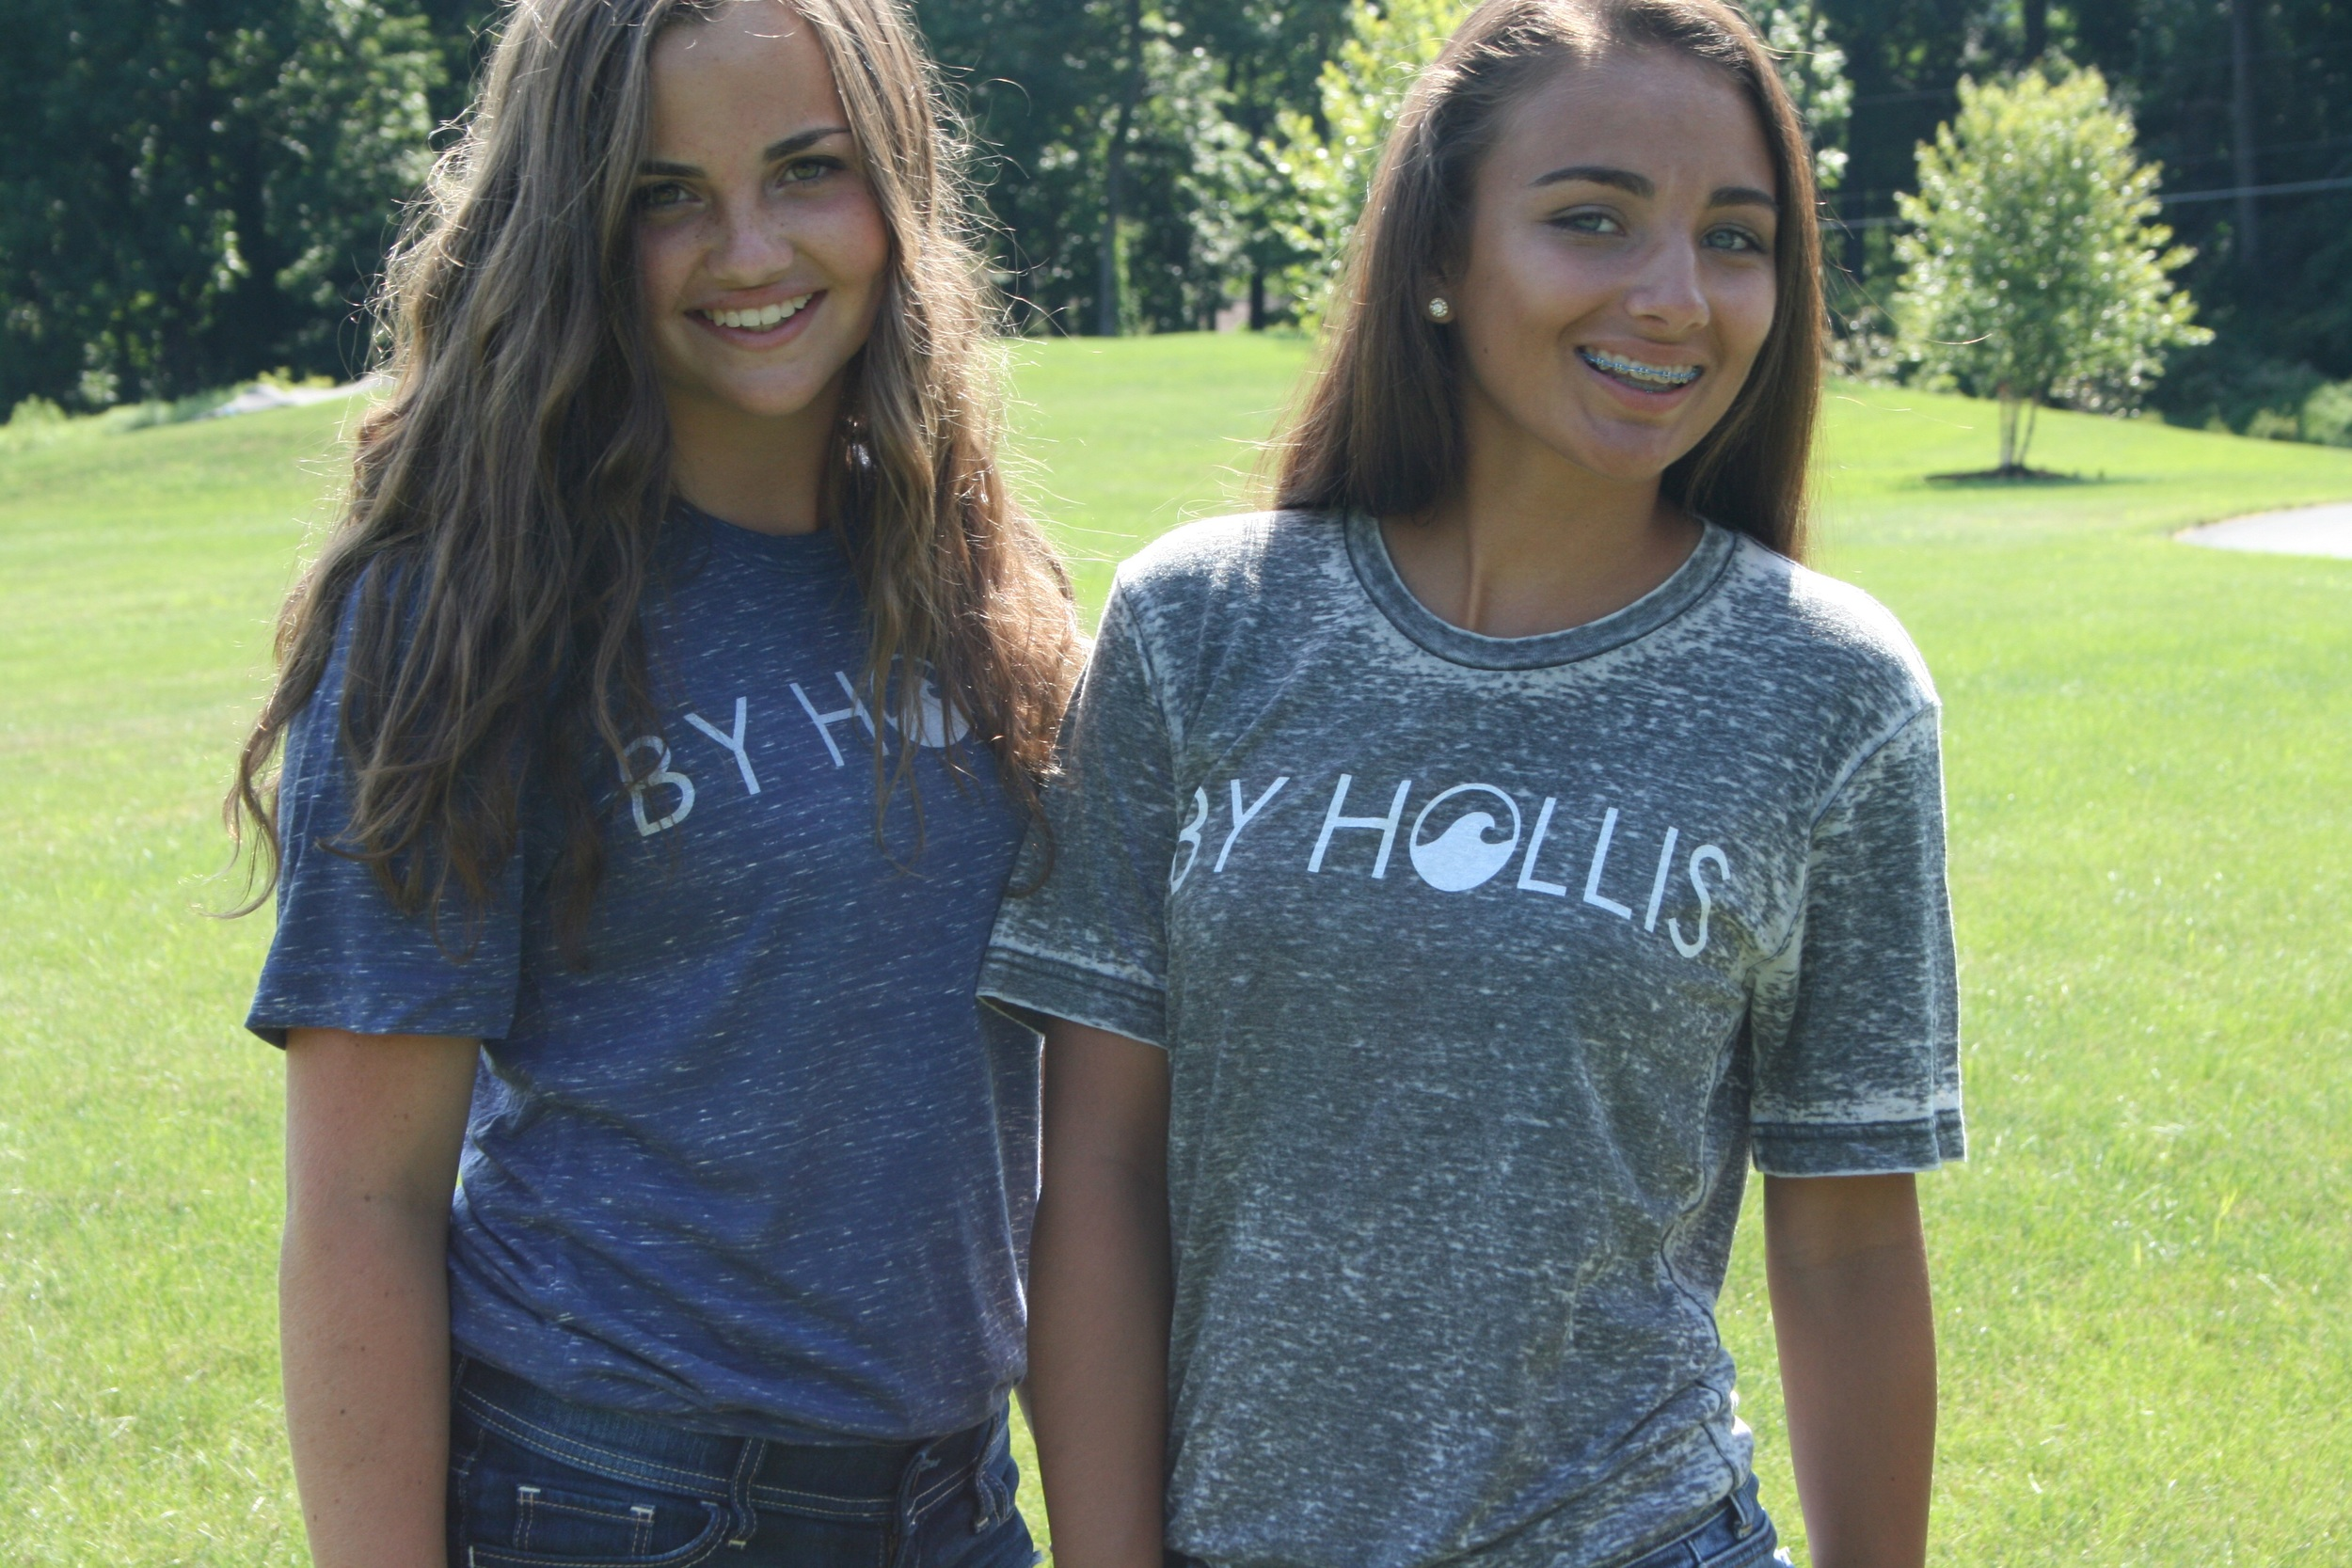 The first photo shoot with Bayleigh and Molly in the new shirts.